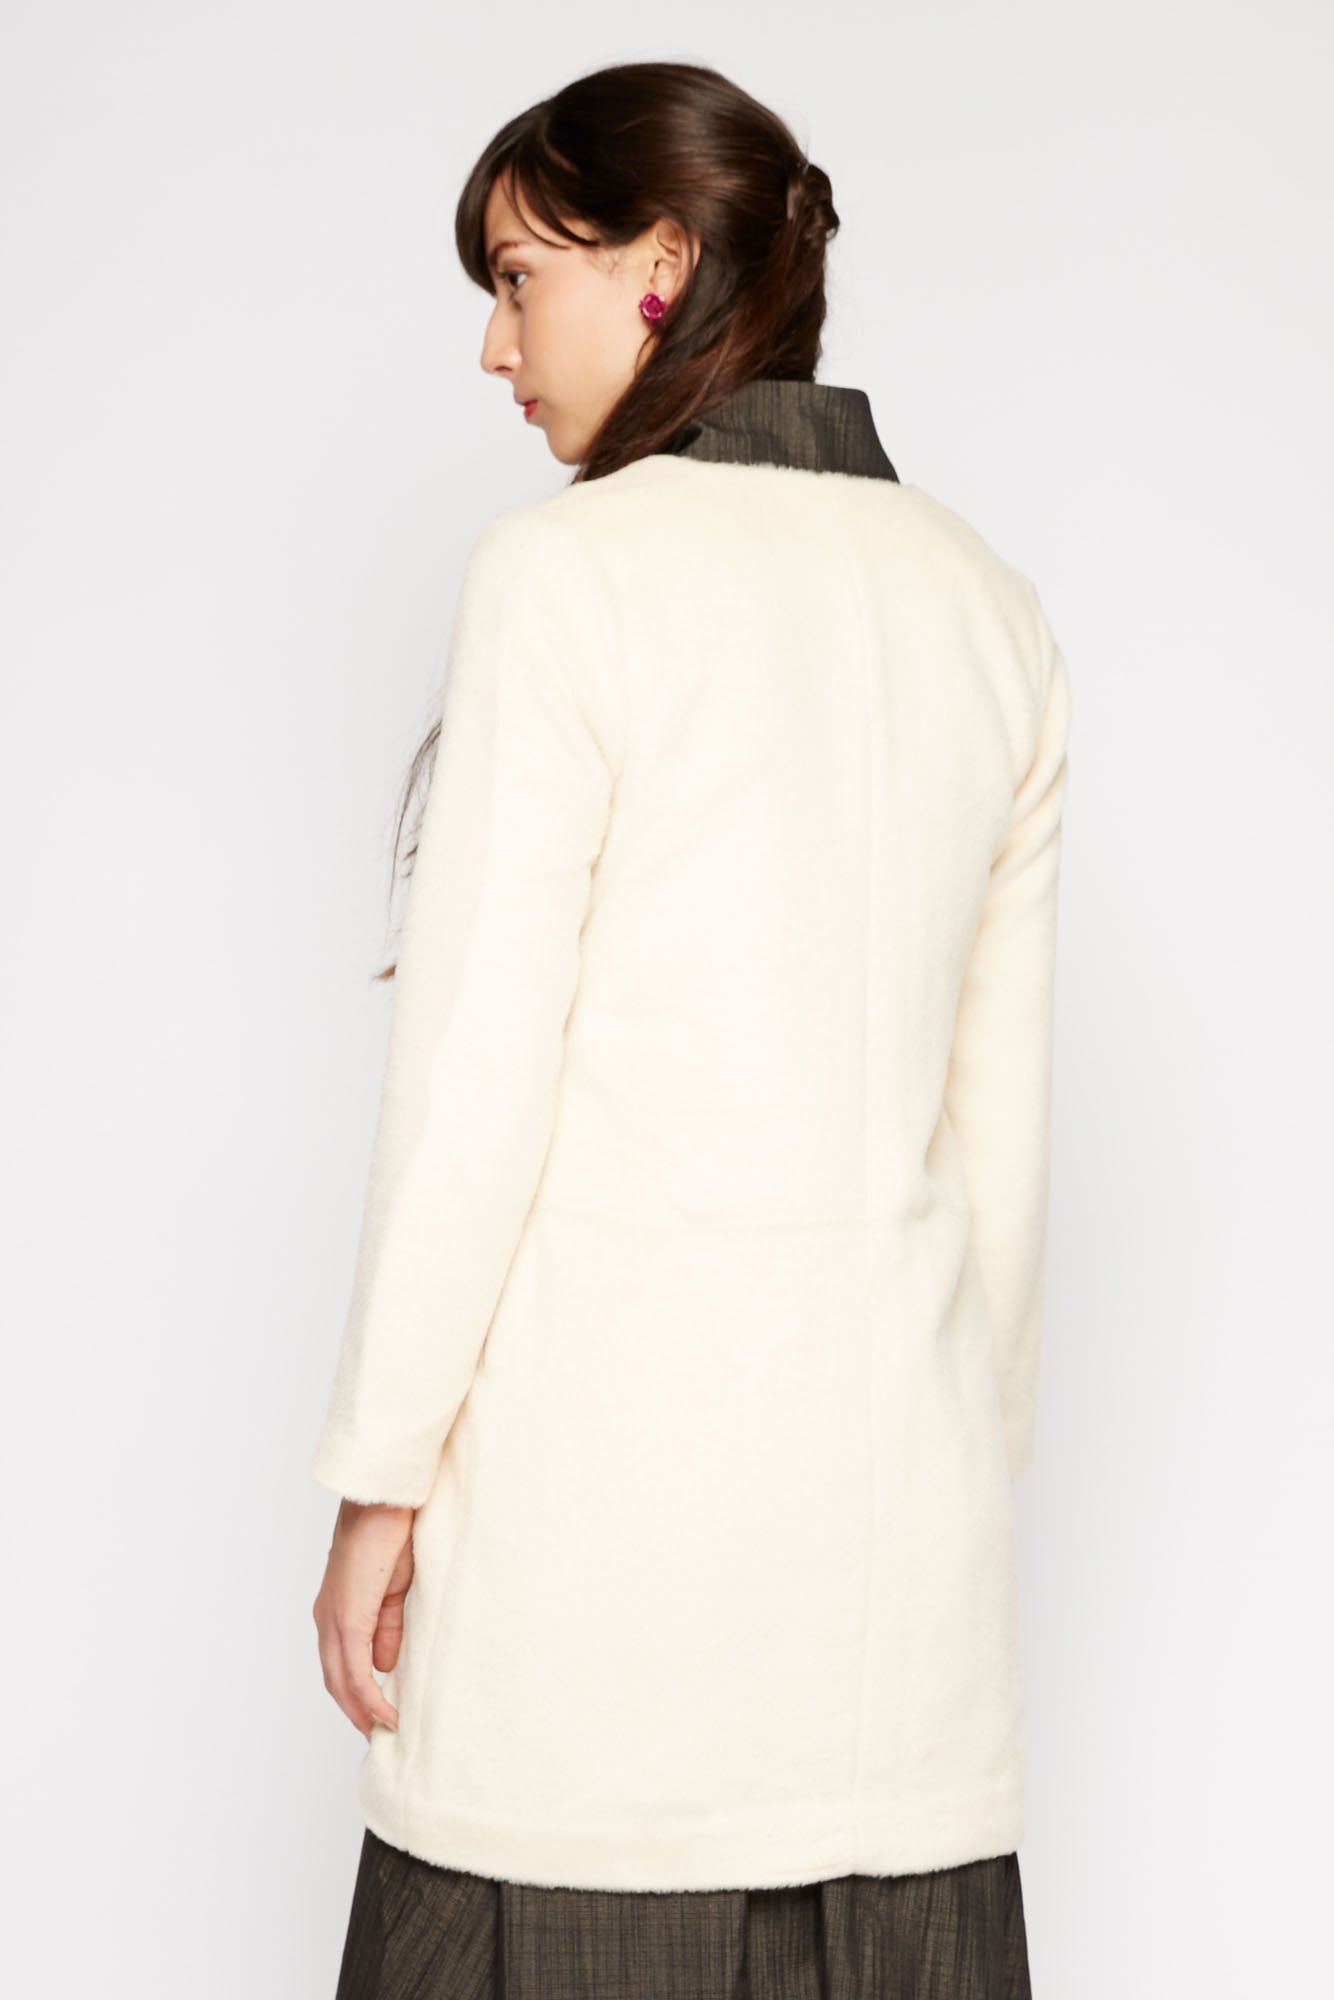 Libra Fuzzy Cream Coat